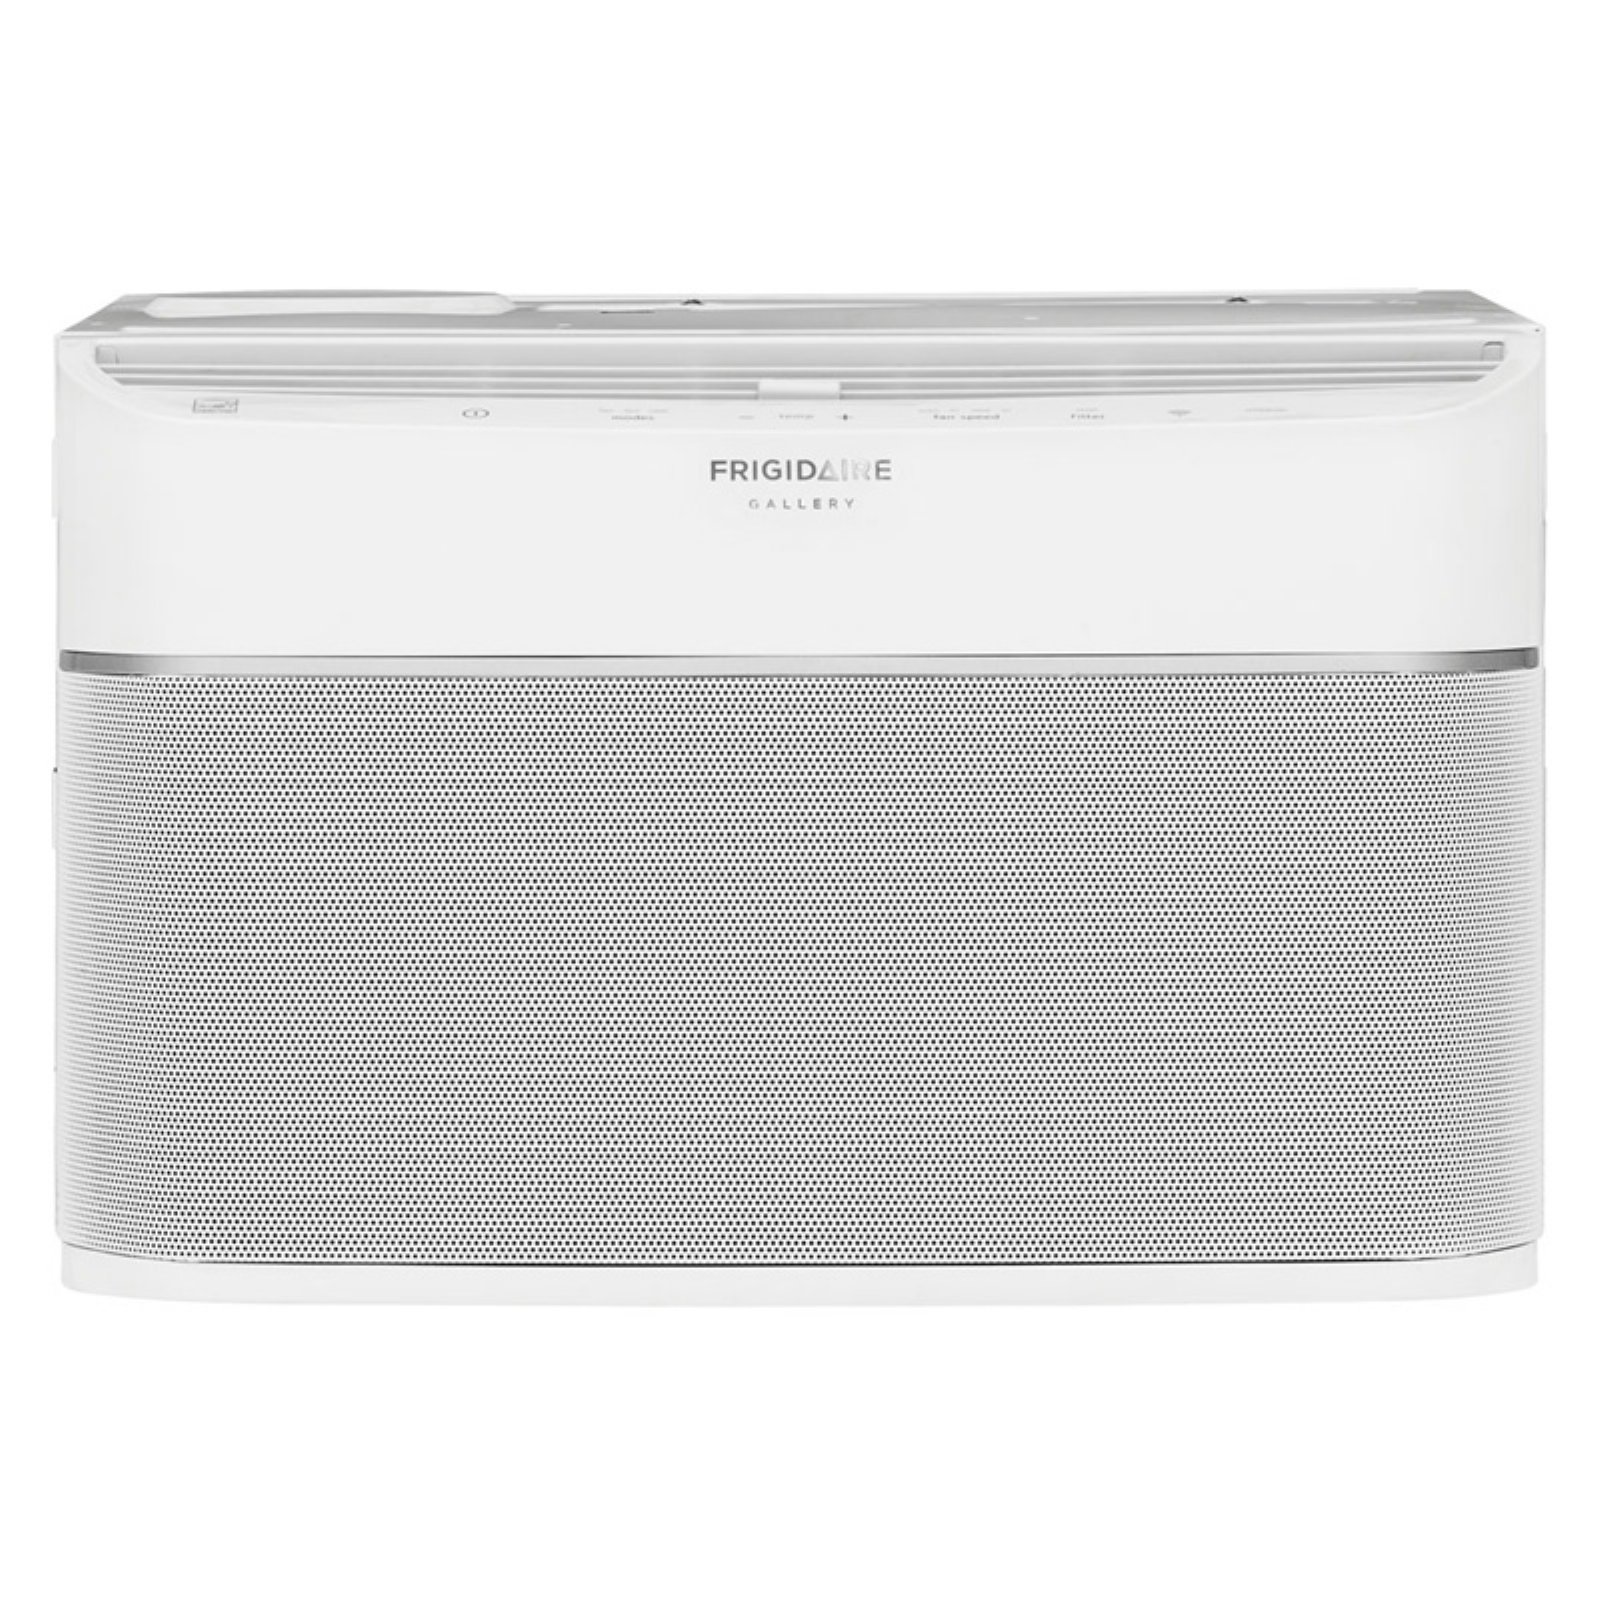 Frigidaire FGRC0844S1 Cool Connect 8,000 BTU 115V Window-Mounted Air Conditioner with WiFi Control